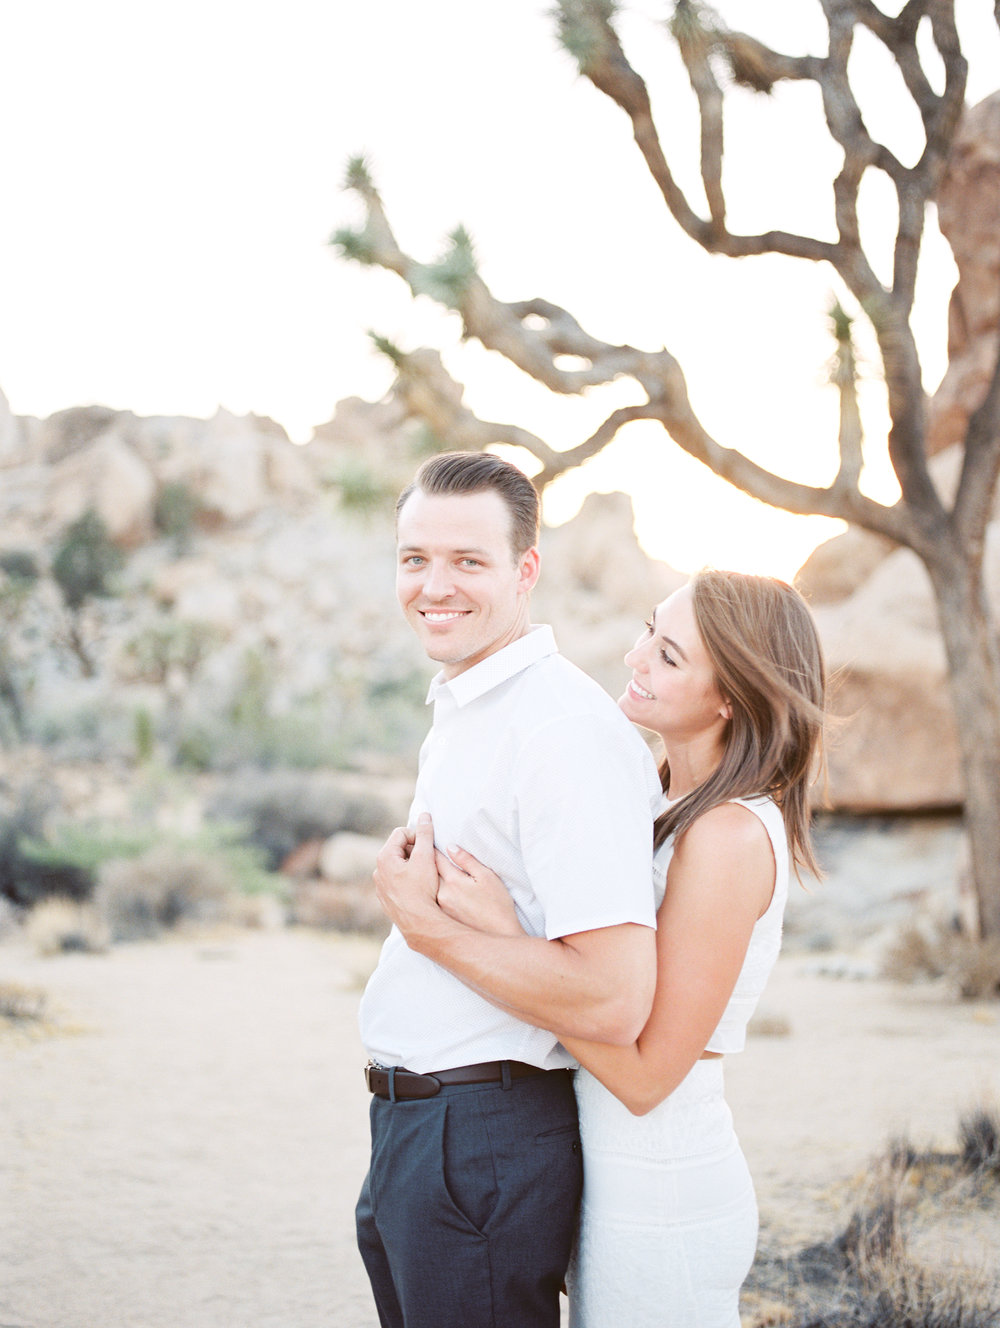 Nick + Stephanie - Joshua tree, california